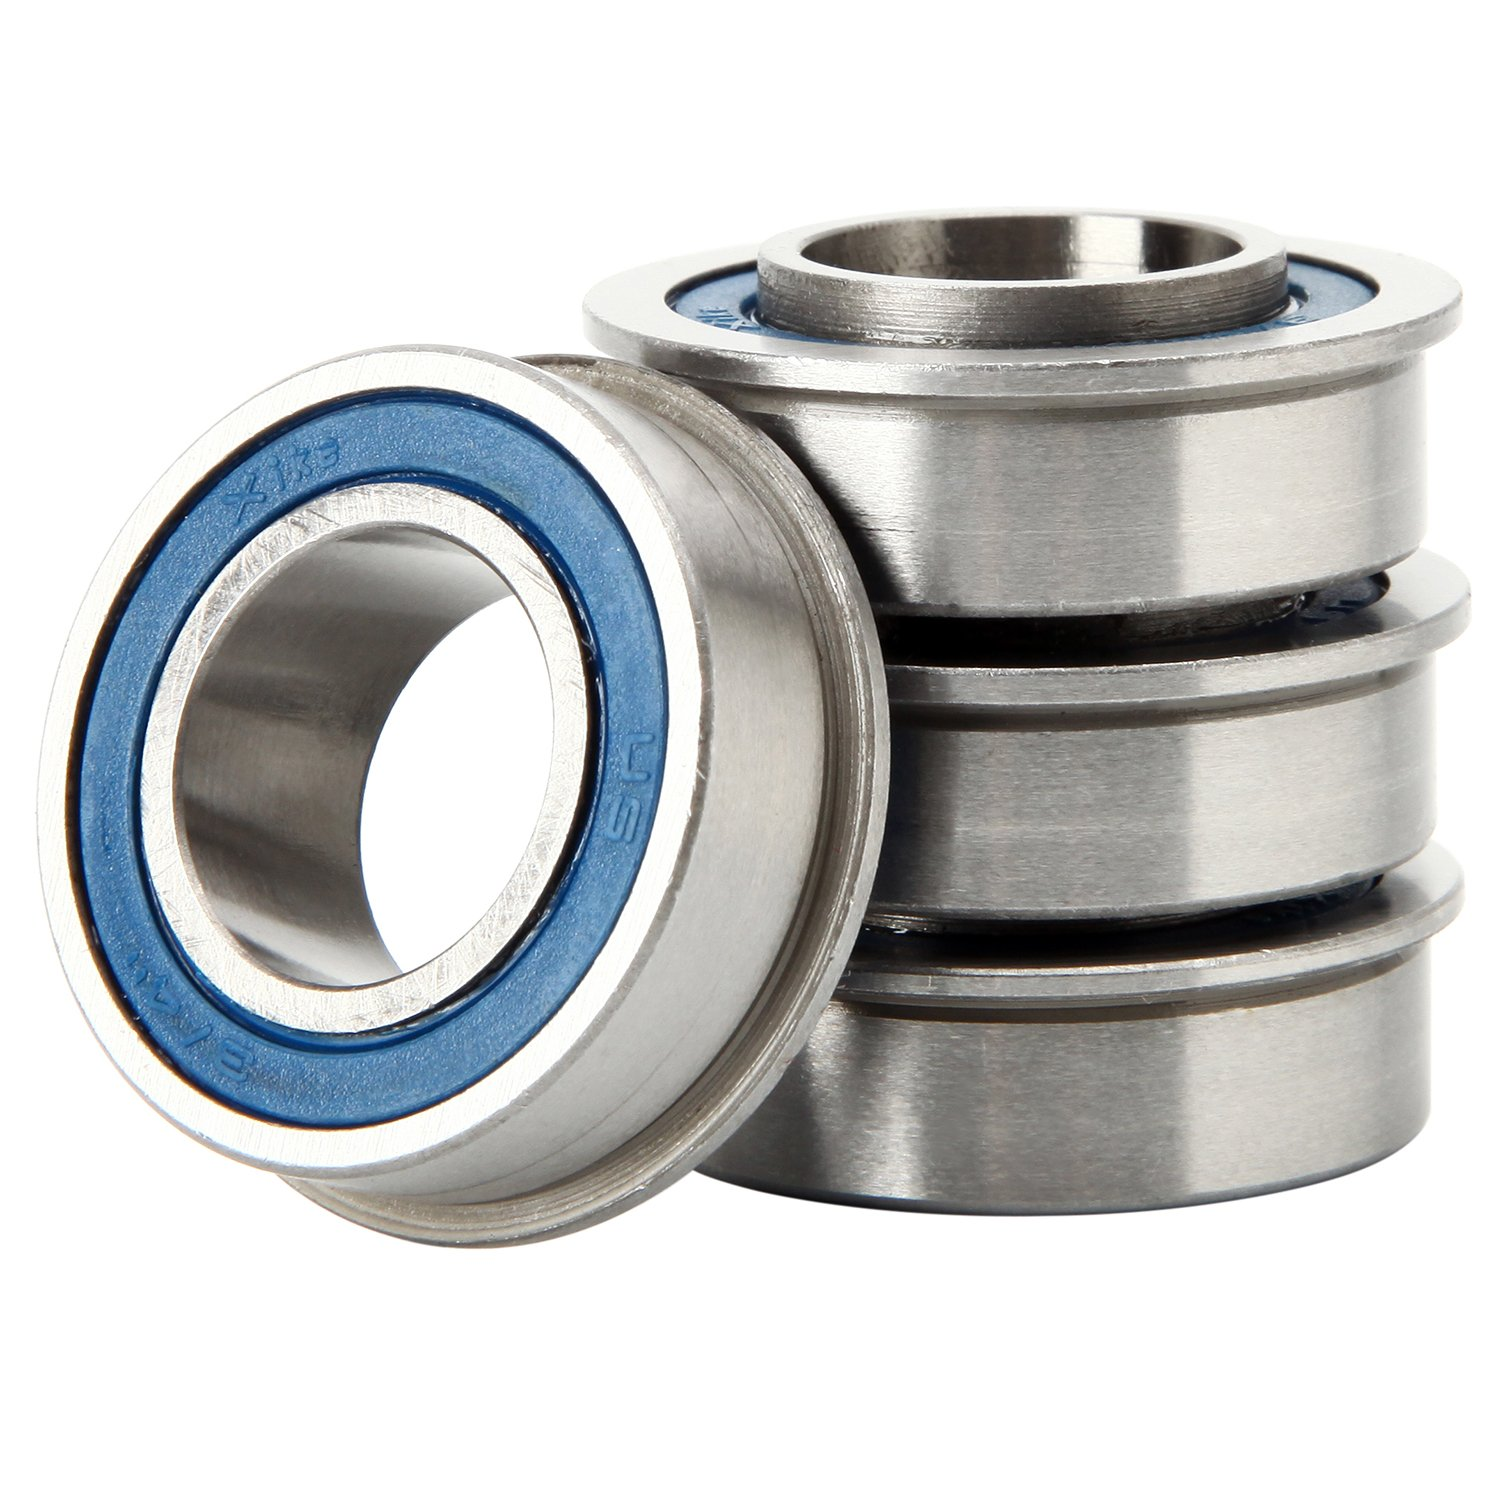 XiKe 4 Pack ID 3/4 x OD 1-3/8 Flanged Precise Ball Bearing, Lawn Mower, Wheelbarrows, Carts & Hand Trucks Wheel Hub for Suitable, Replace Marathon, MTD, JD and Toro and Snapper.